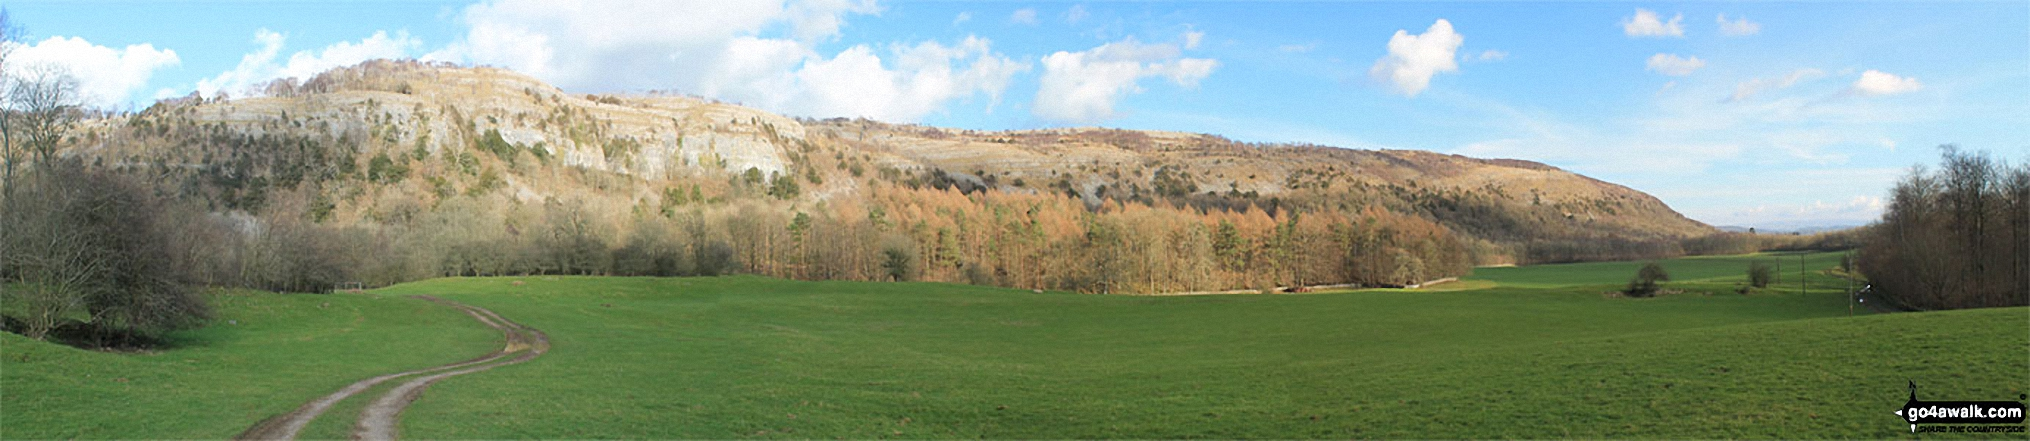 Chapel Head Scar and Whitbarrow Scar from Witherslack Hall School